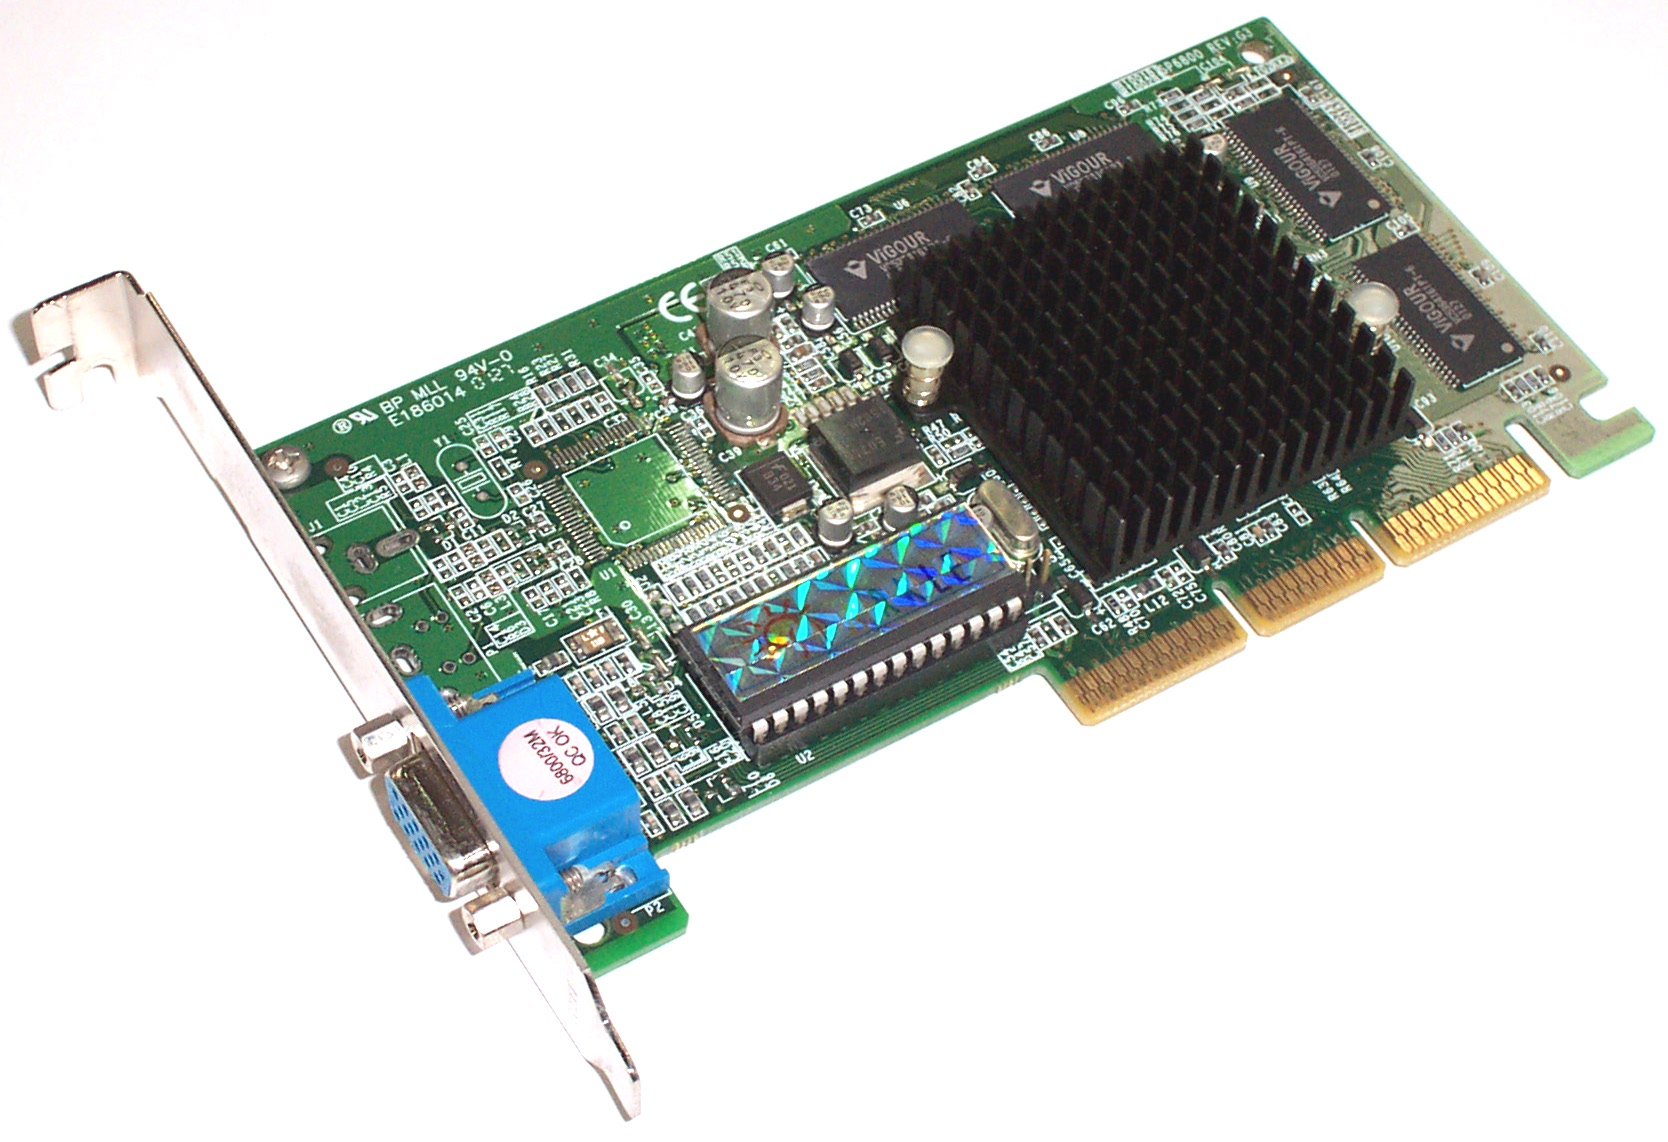 GEFORCE2 MX-200 DRIVER FOR MAC DOWNLOAD